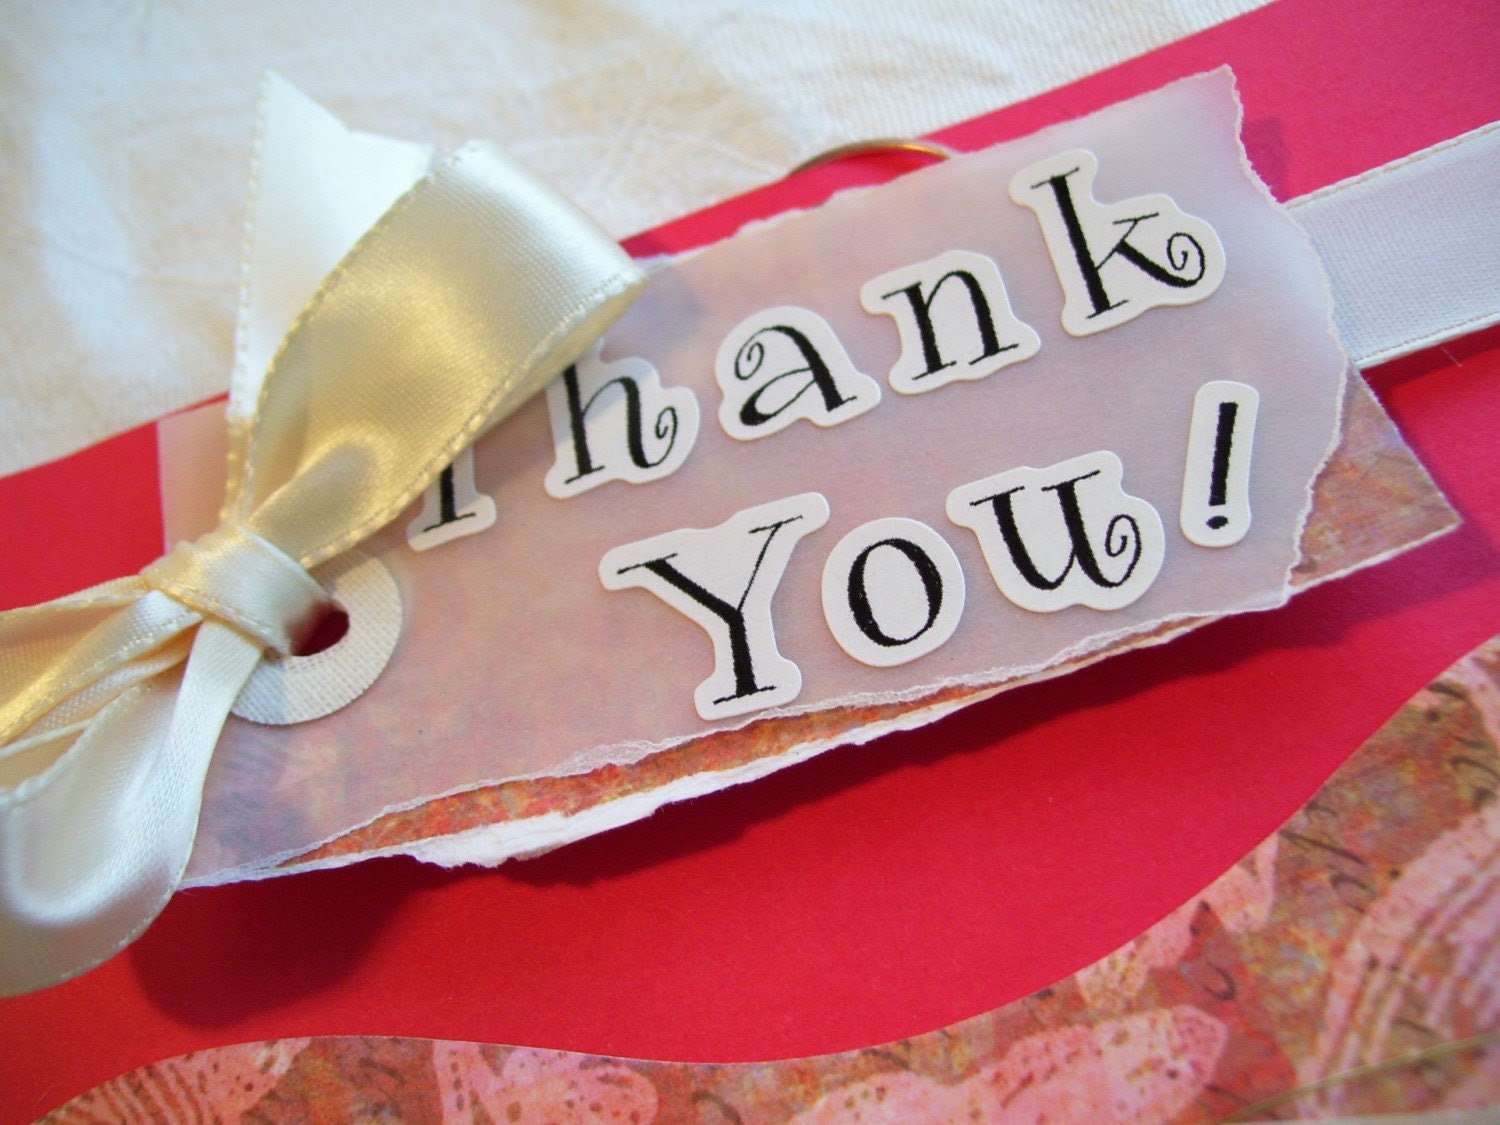 Handmade Reusable Thankyou Card of Red Cardstock